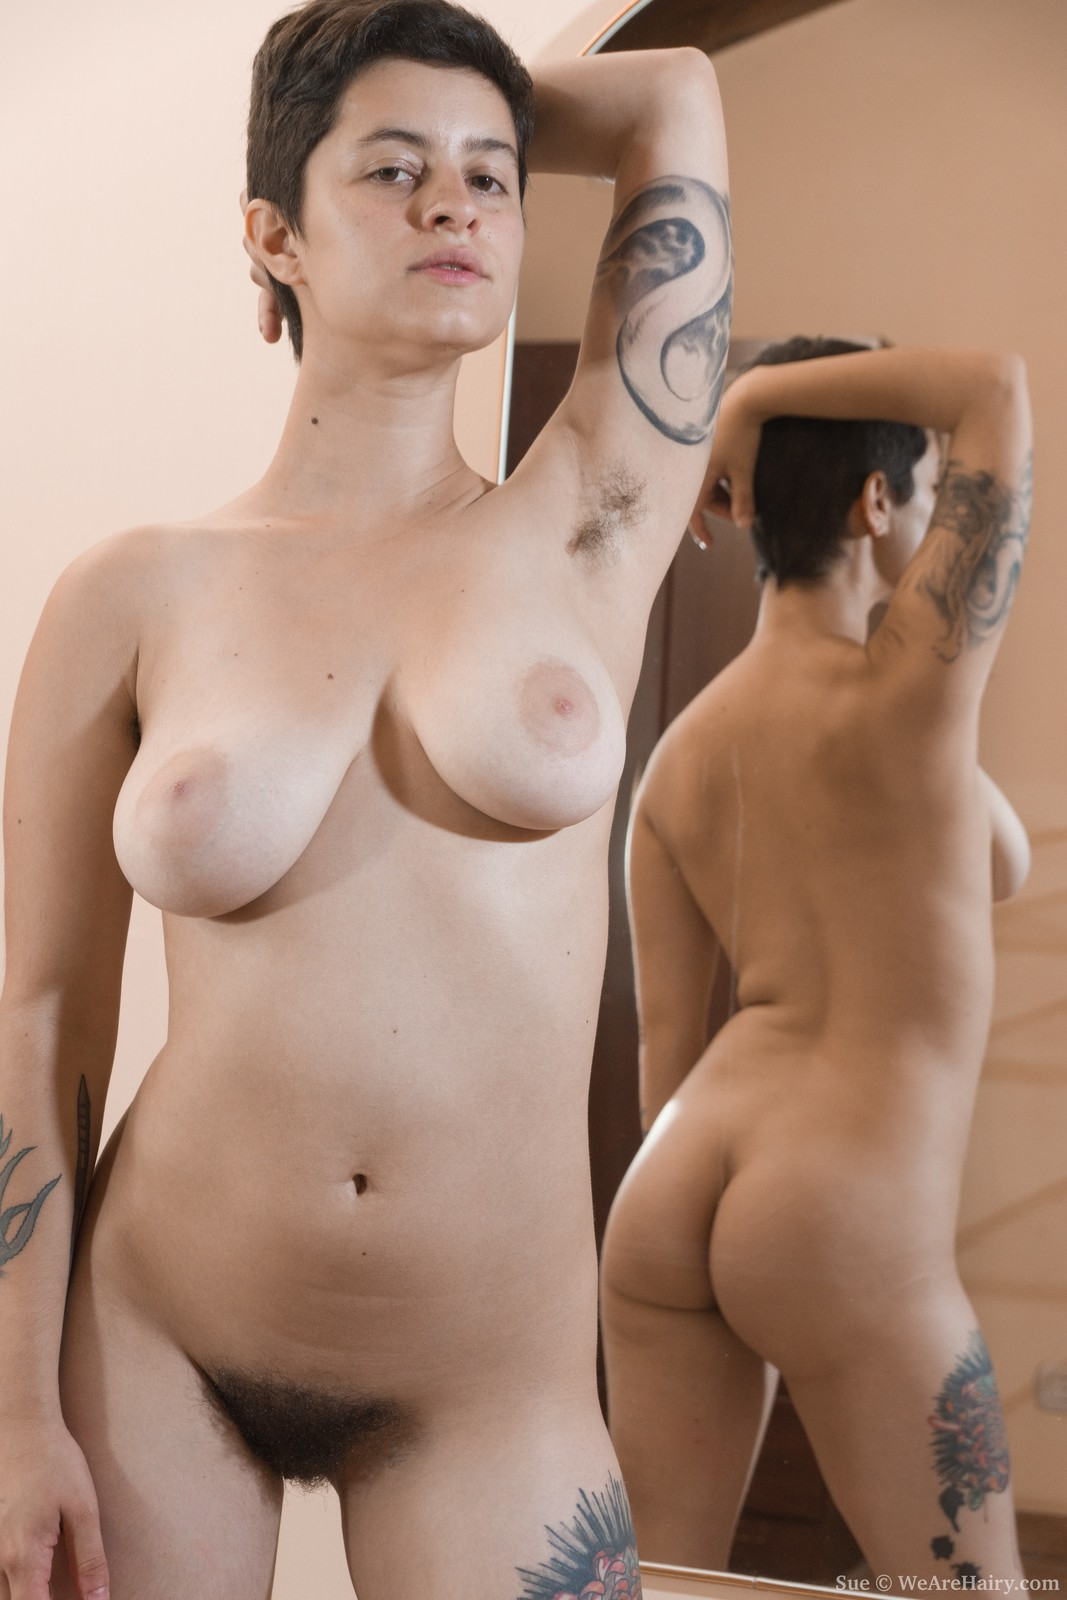 wpid-sue-poses-naked-and-strips-in-front-of-a-mirror6.jpg